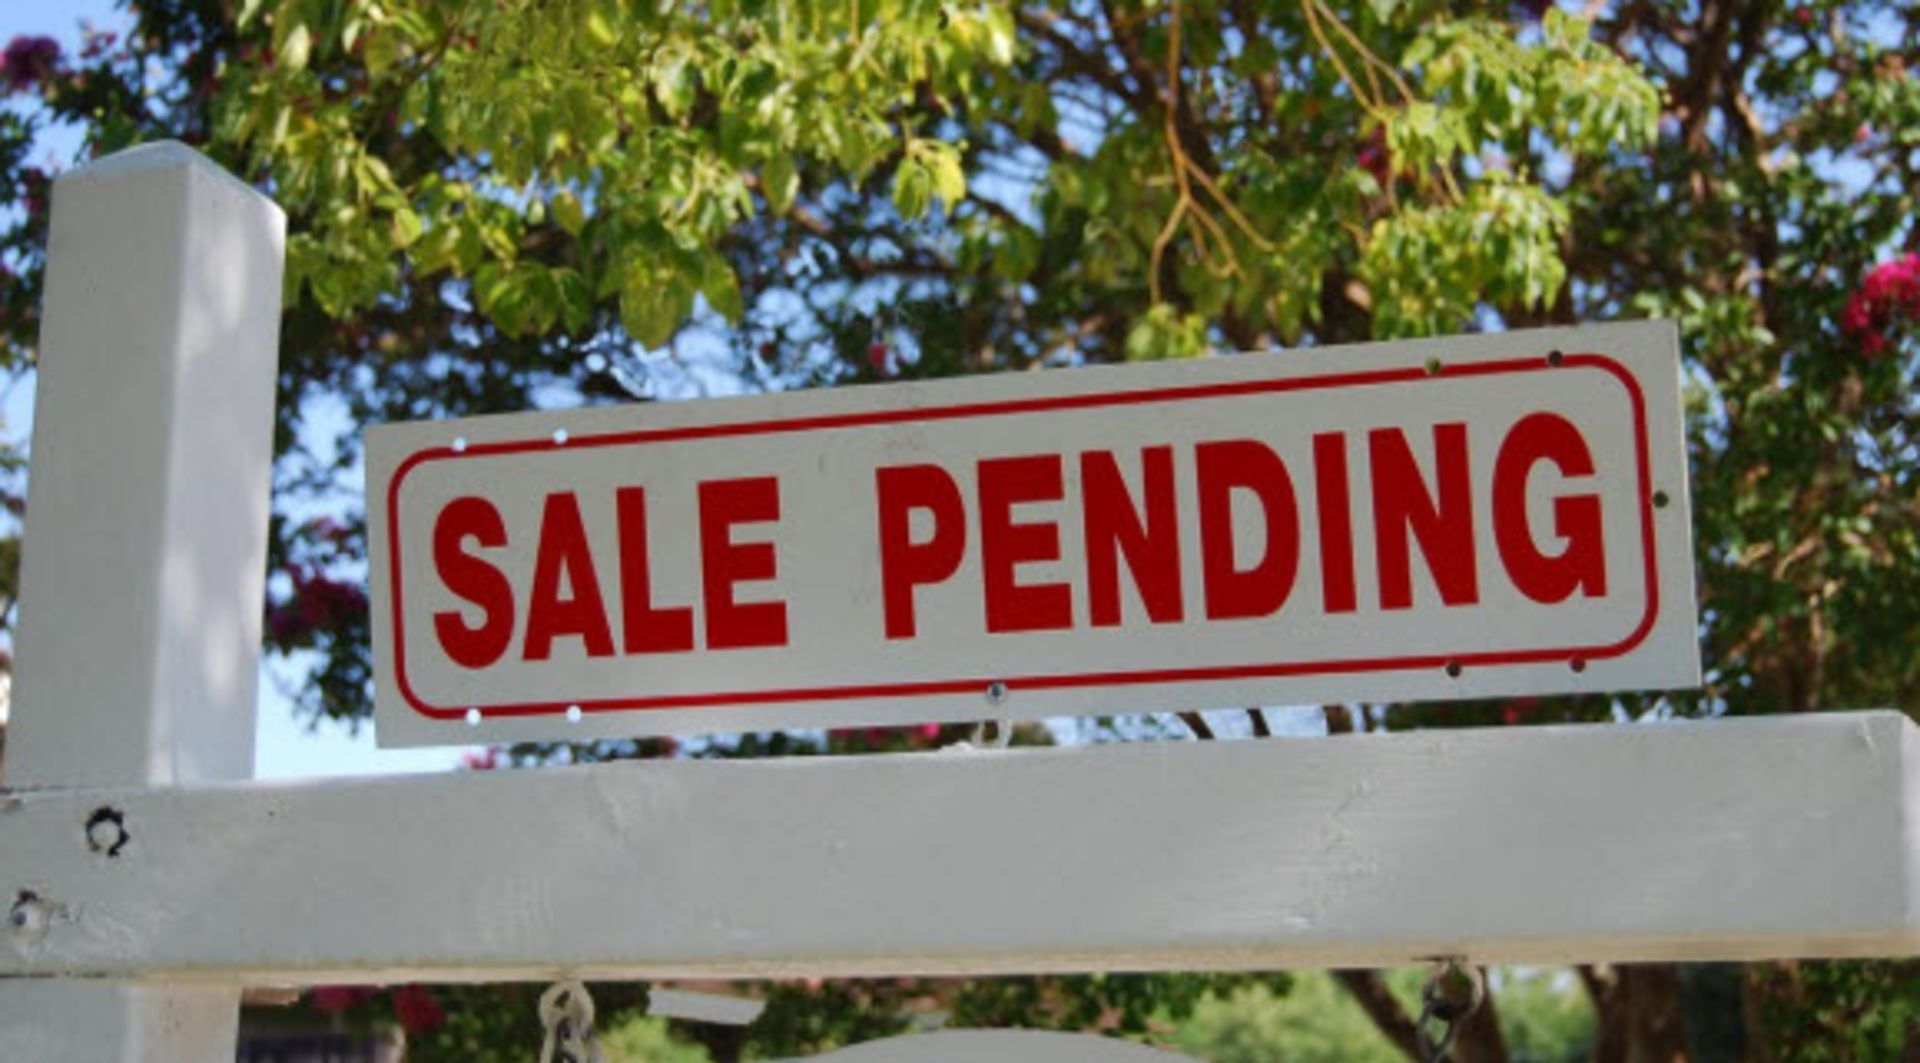 Don't be too concerned with recent drop in pending home sales